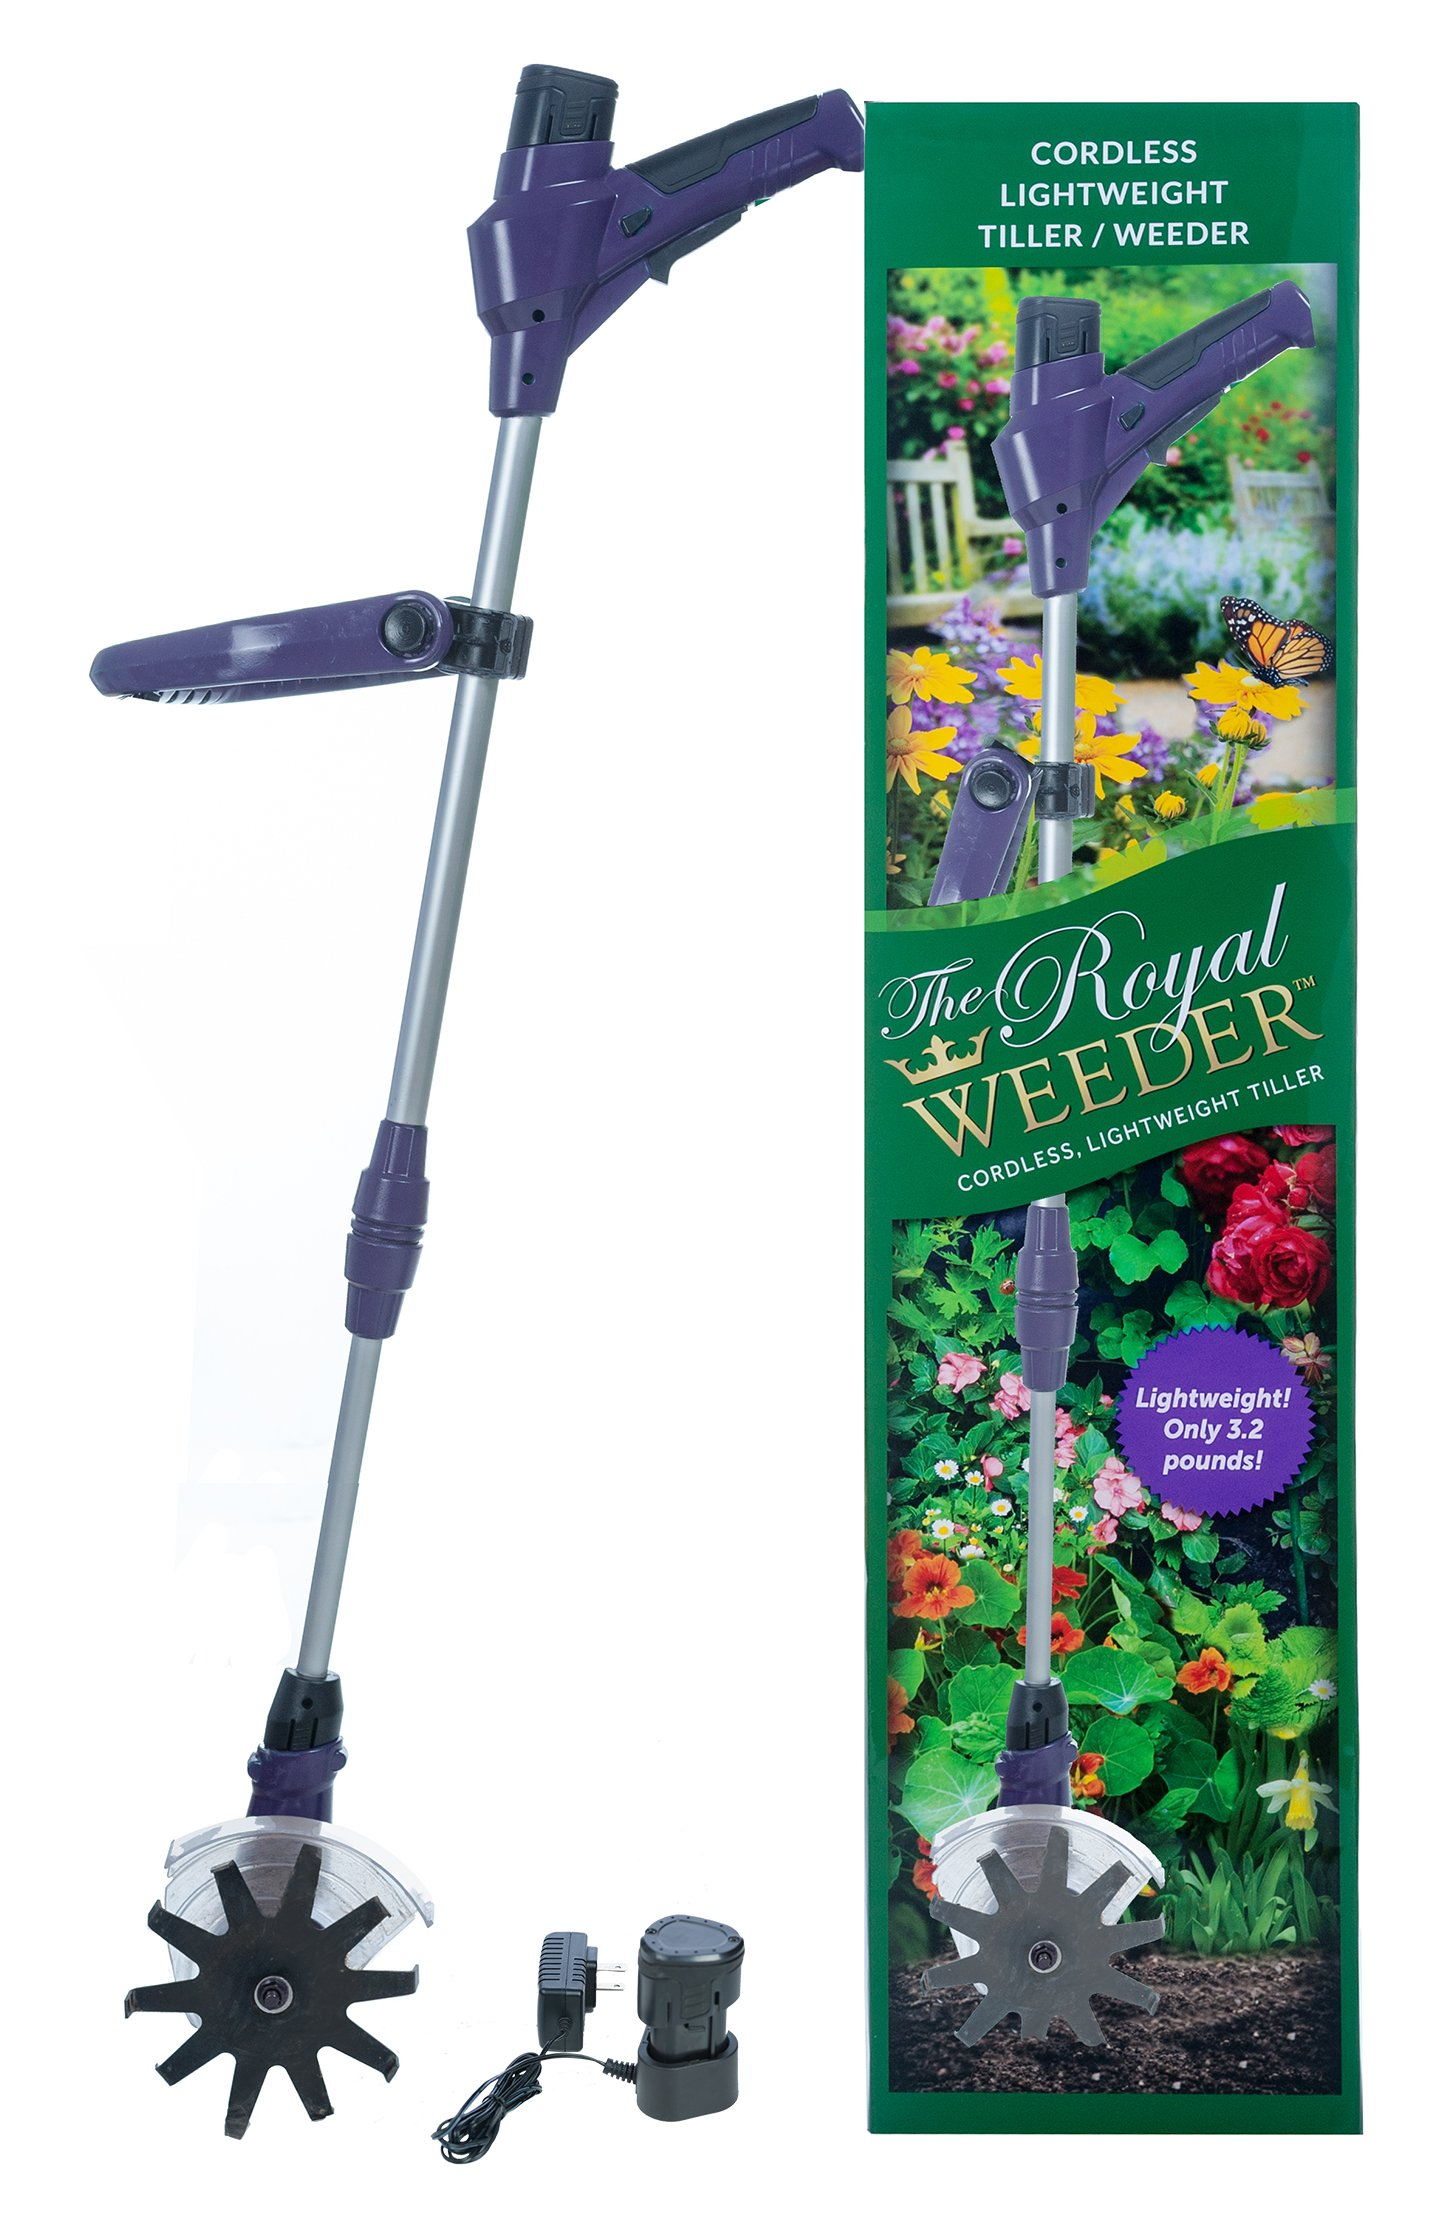 The Royal Weeder Lightweight Electric Tiller and Cultivator with Rechargeable Battery and Charger Plus Extra Battery